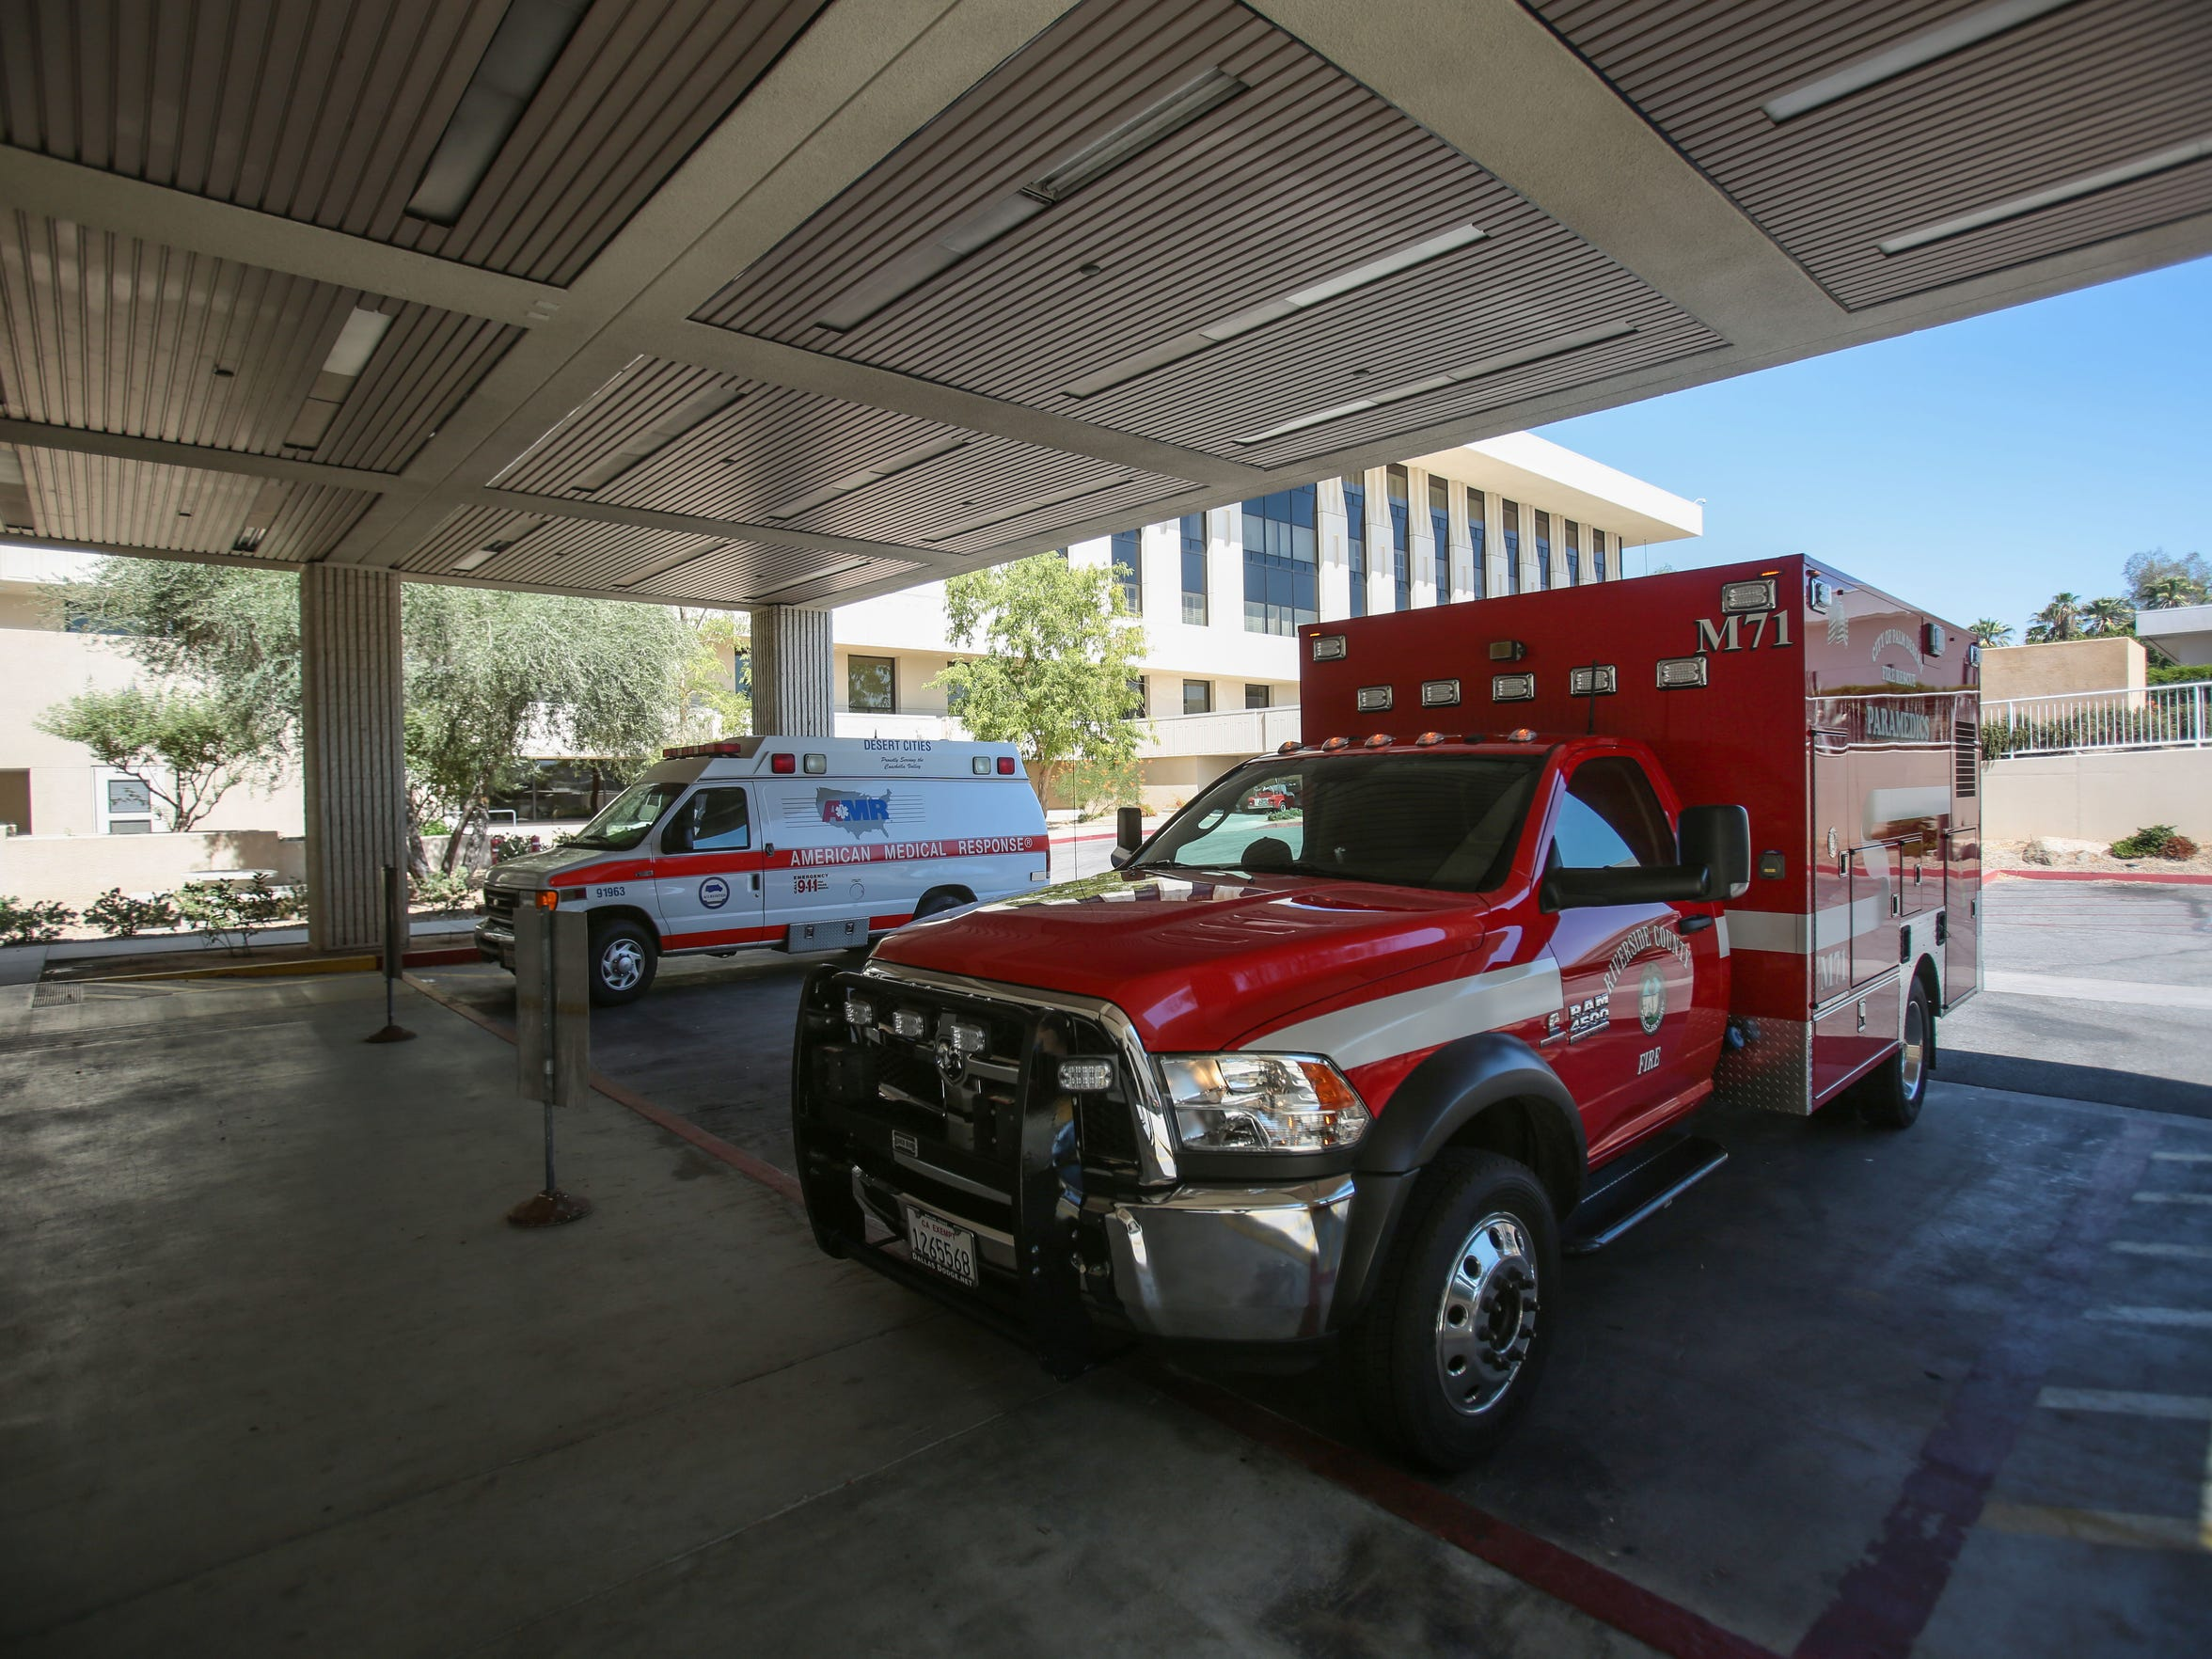 The ambulance entrance at Eisenhower Medical Center  on Friday, July 22, 2016 in Rancho Mirage.